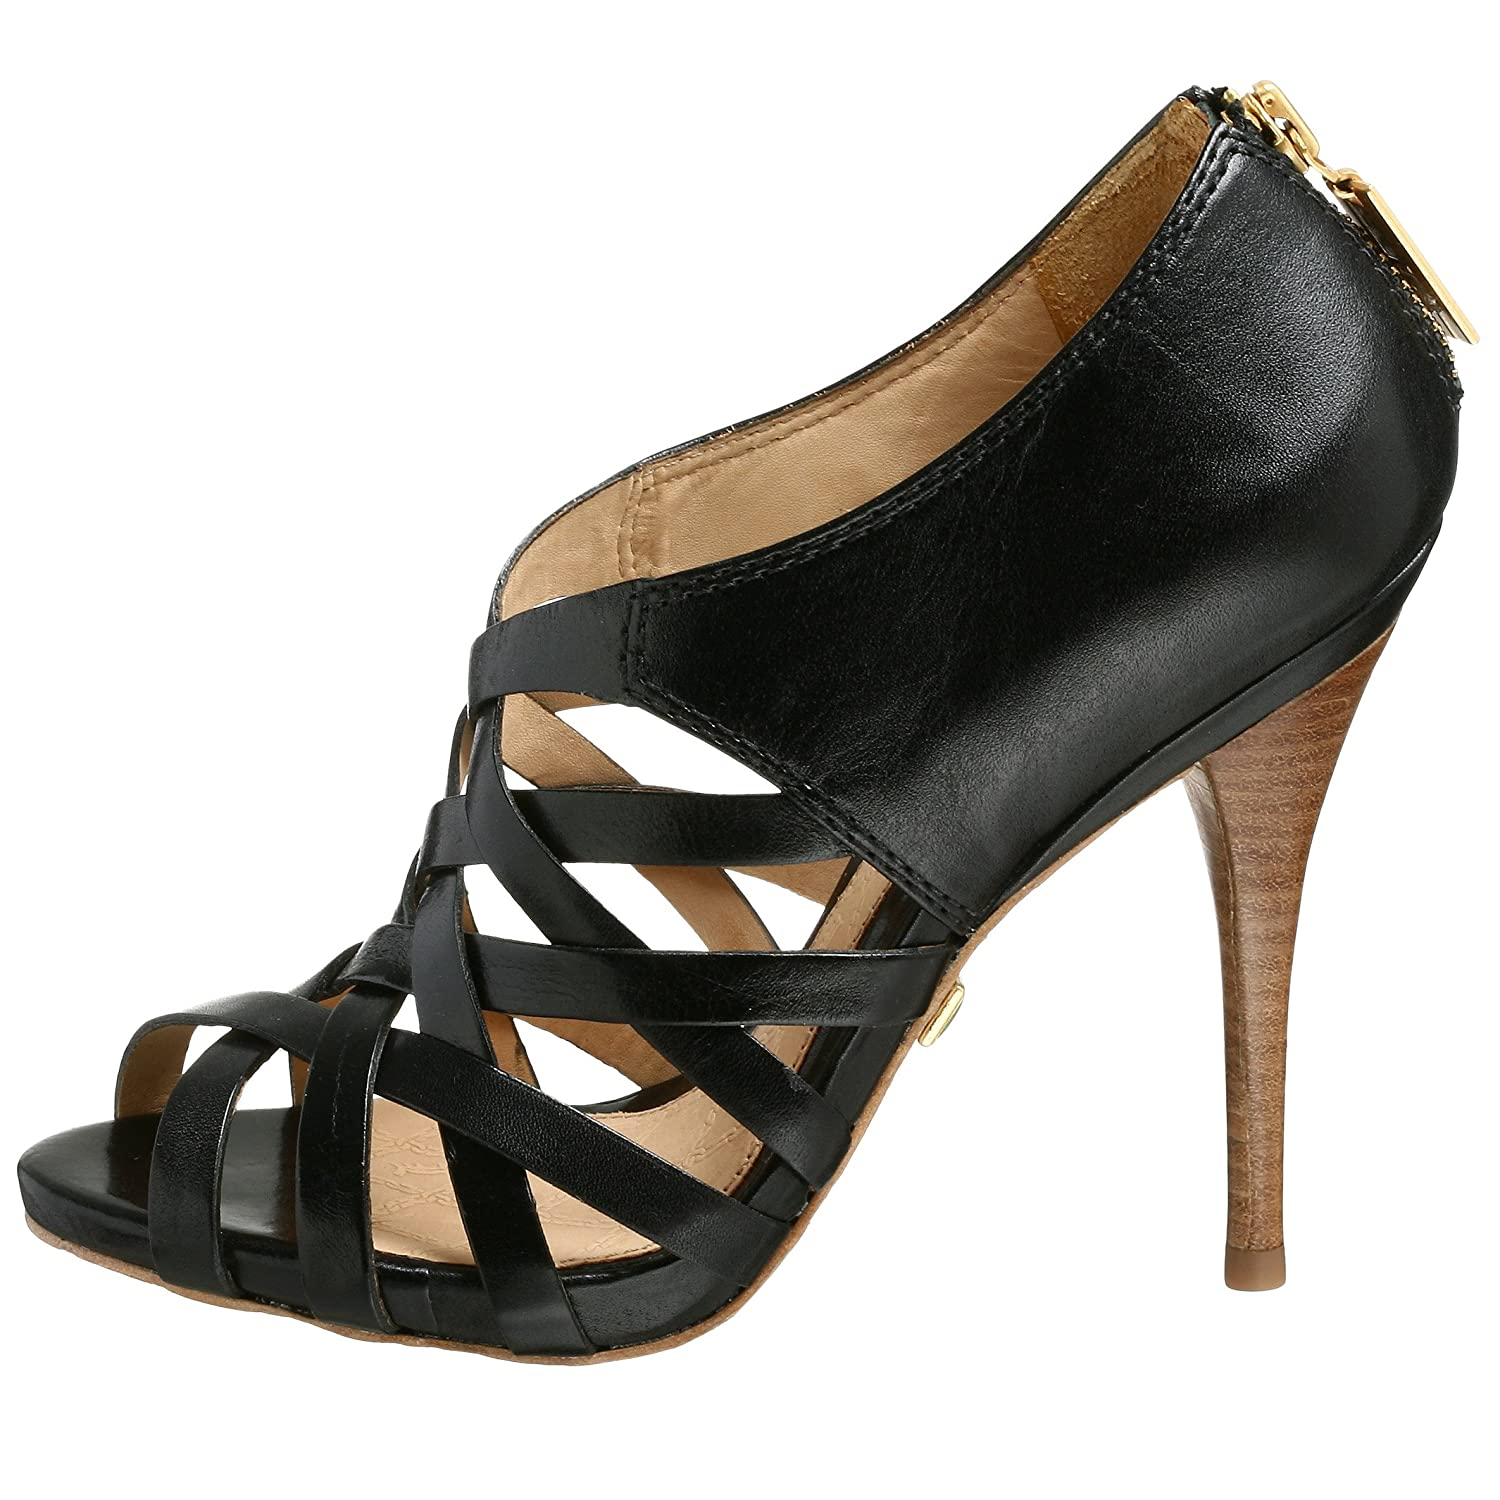 L.A.M.B. Tammy Platform Pump from endless.com